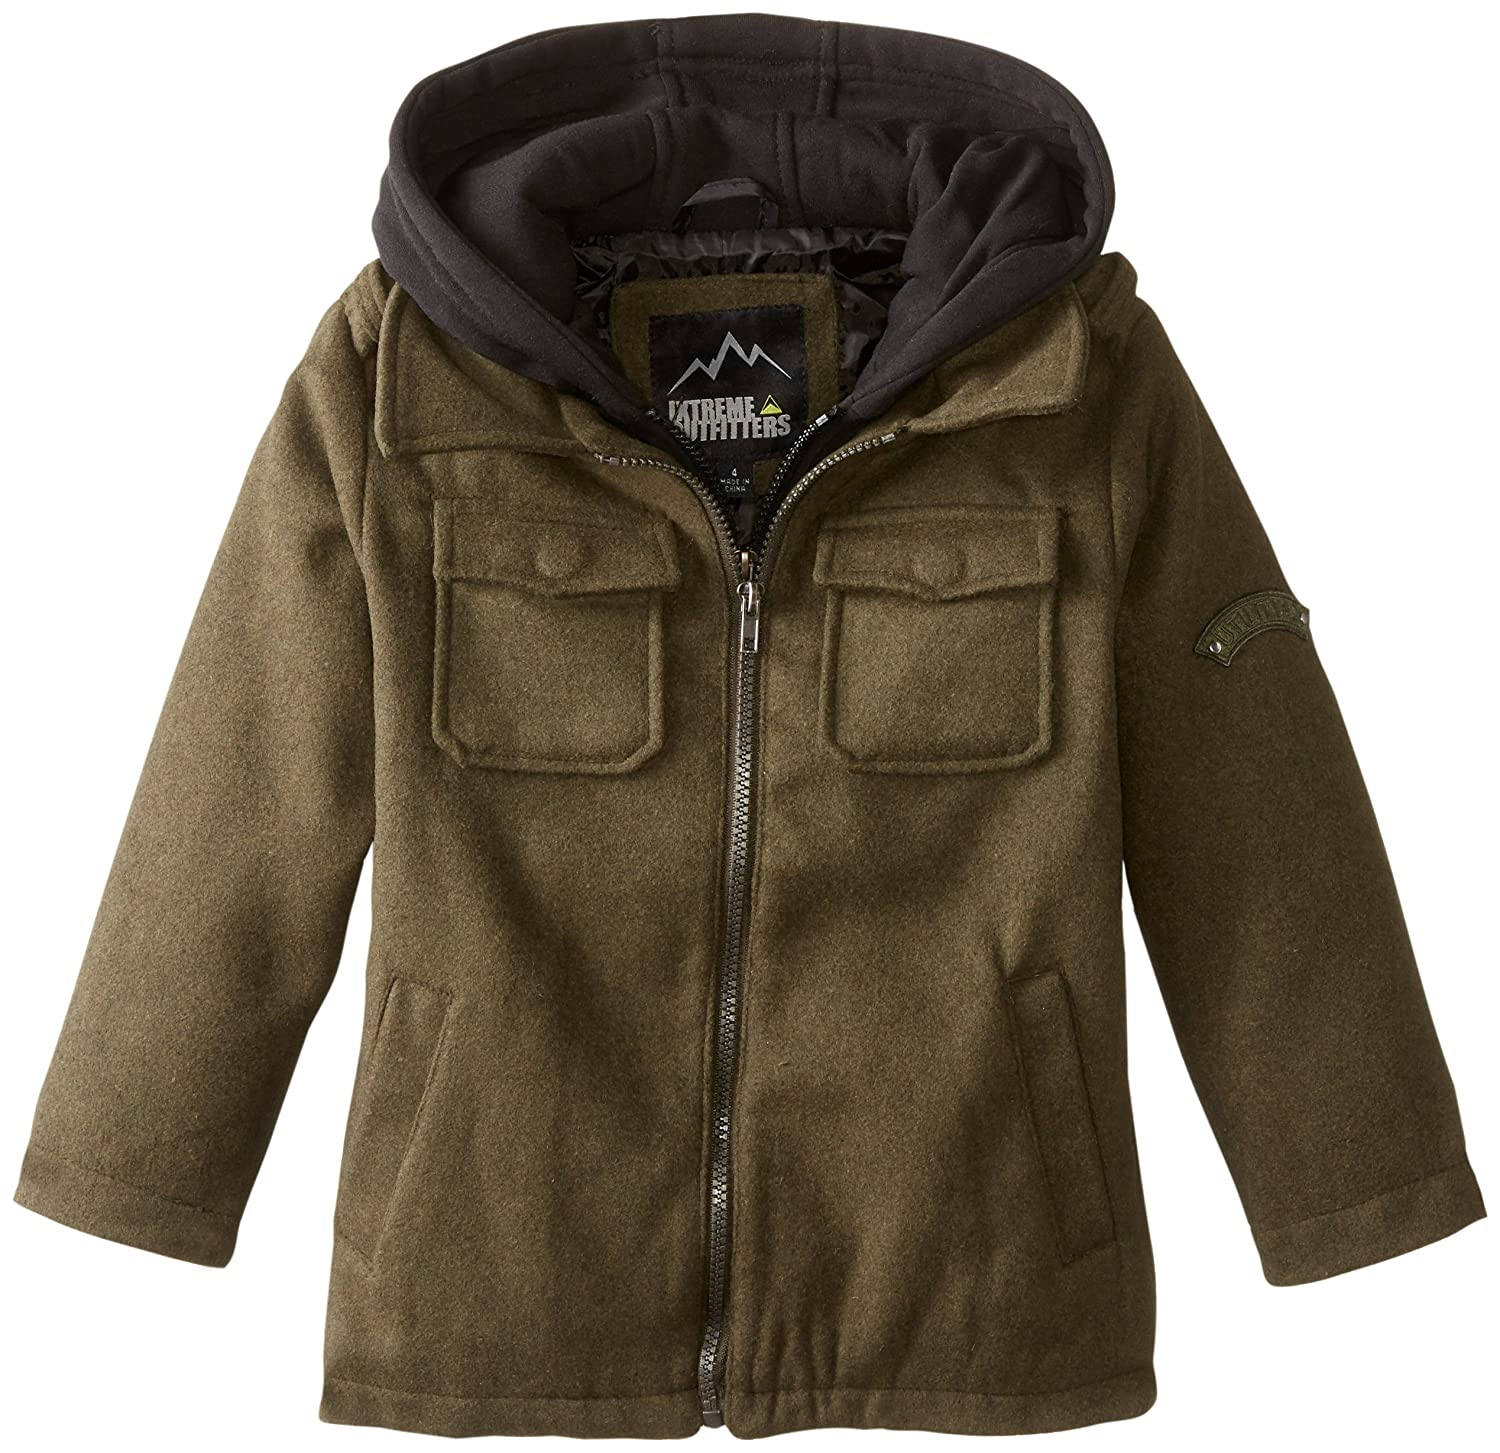 iXtreme Little Boys' Solid Wool Mock 2 In 1 Jacket Olive 6